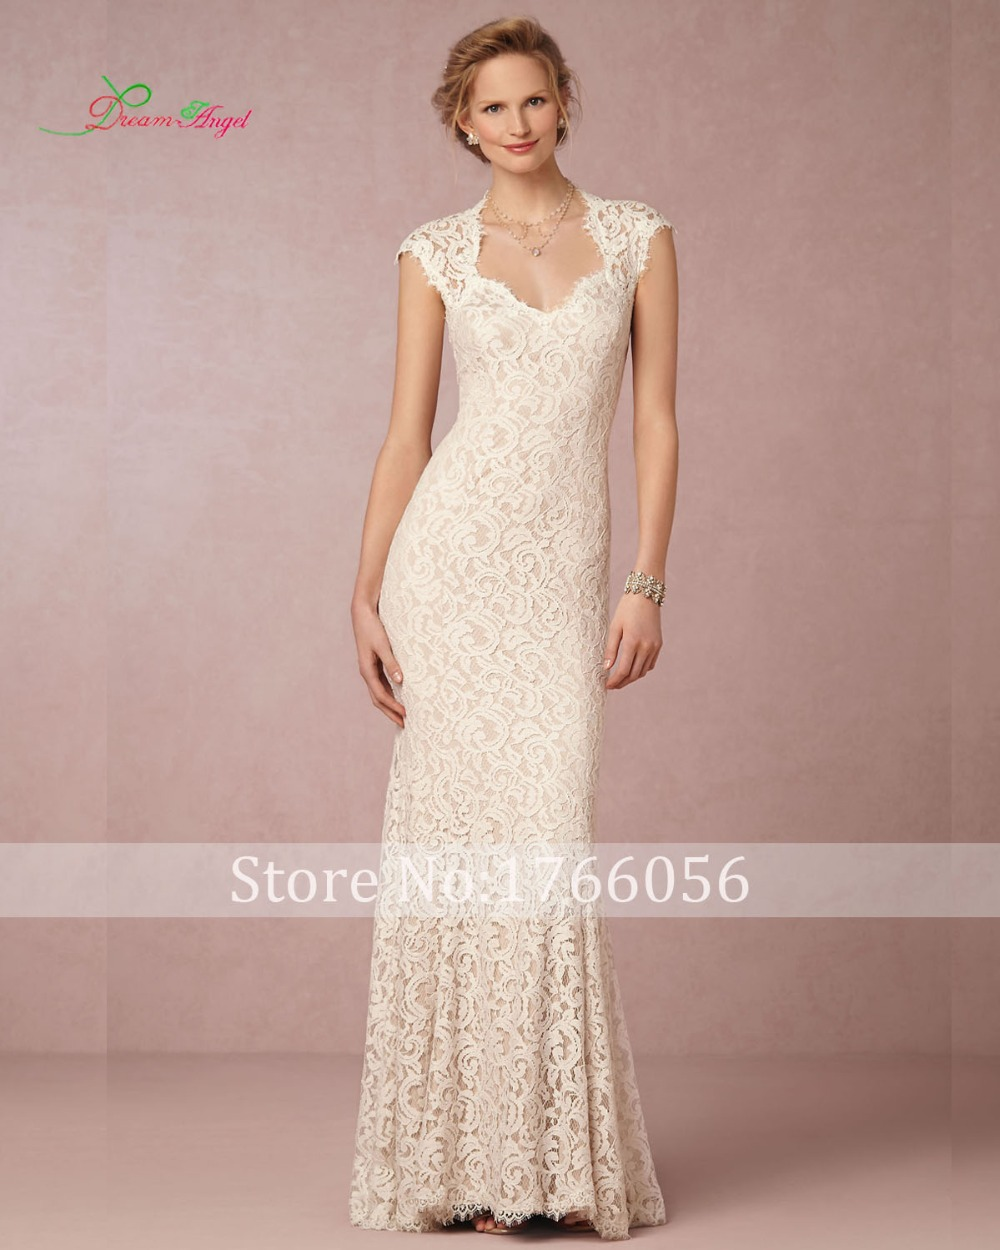 Online Get Cheap Lace Sheath Wedding Dress -Aliexpress.com ...